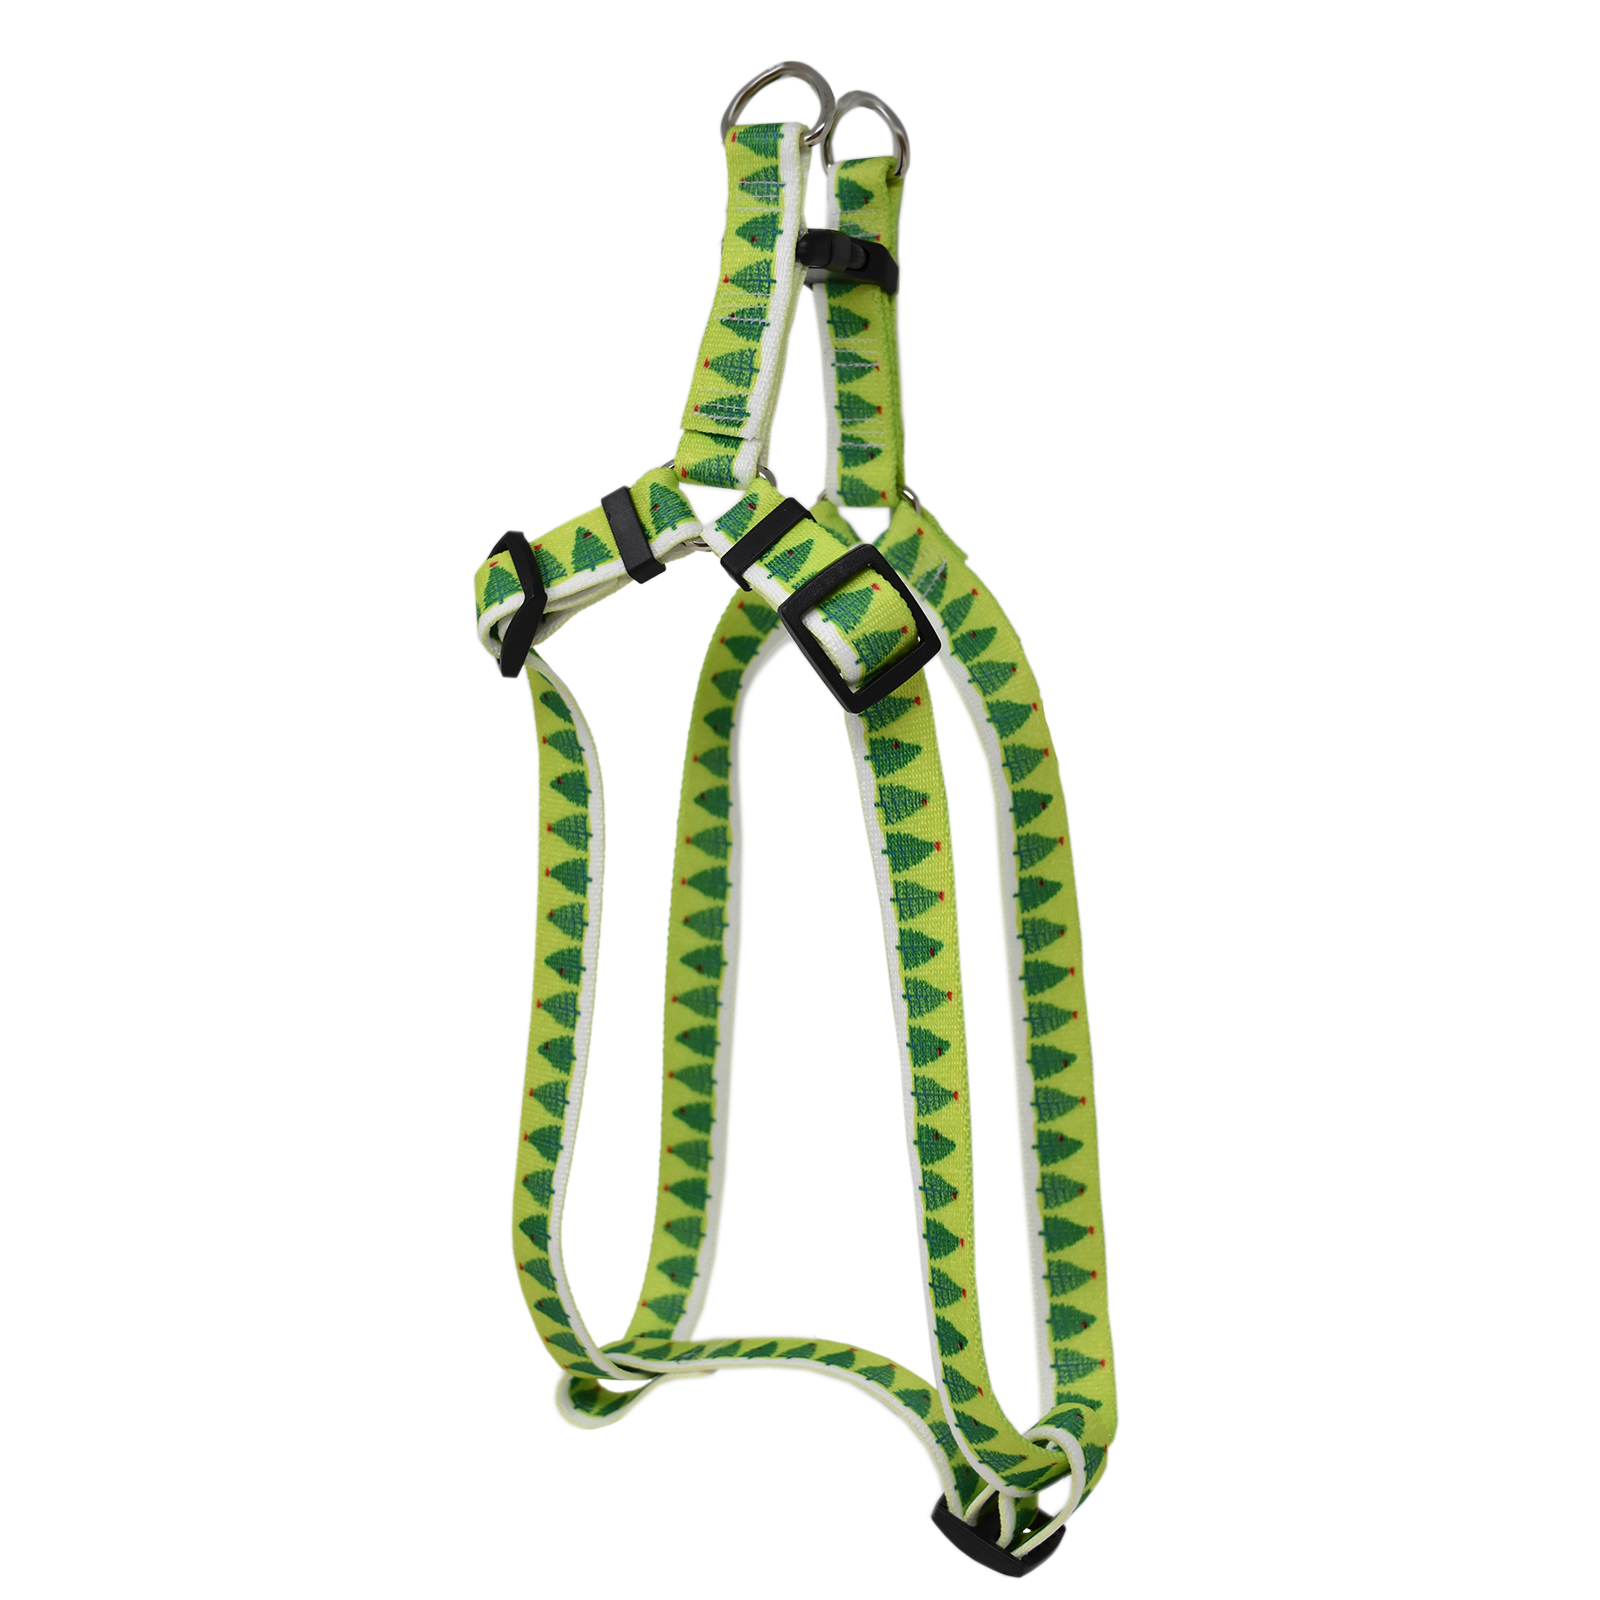 O Tanmenbaum Green Step-In Harness